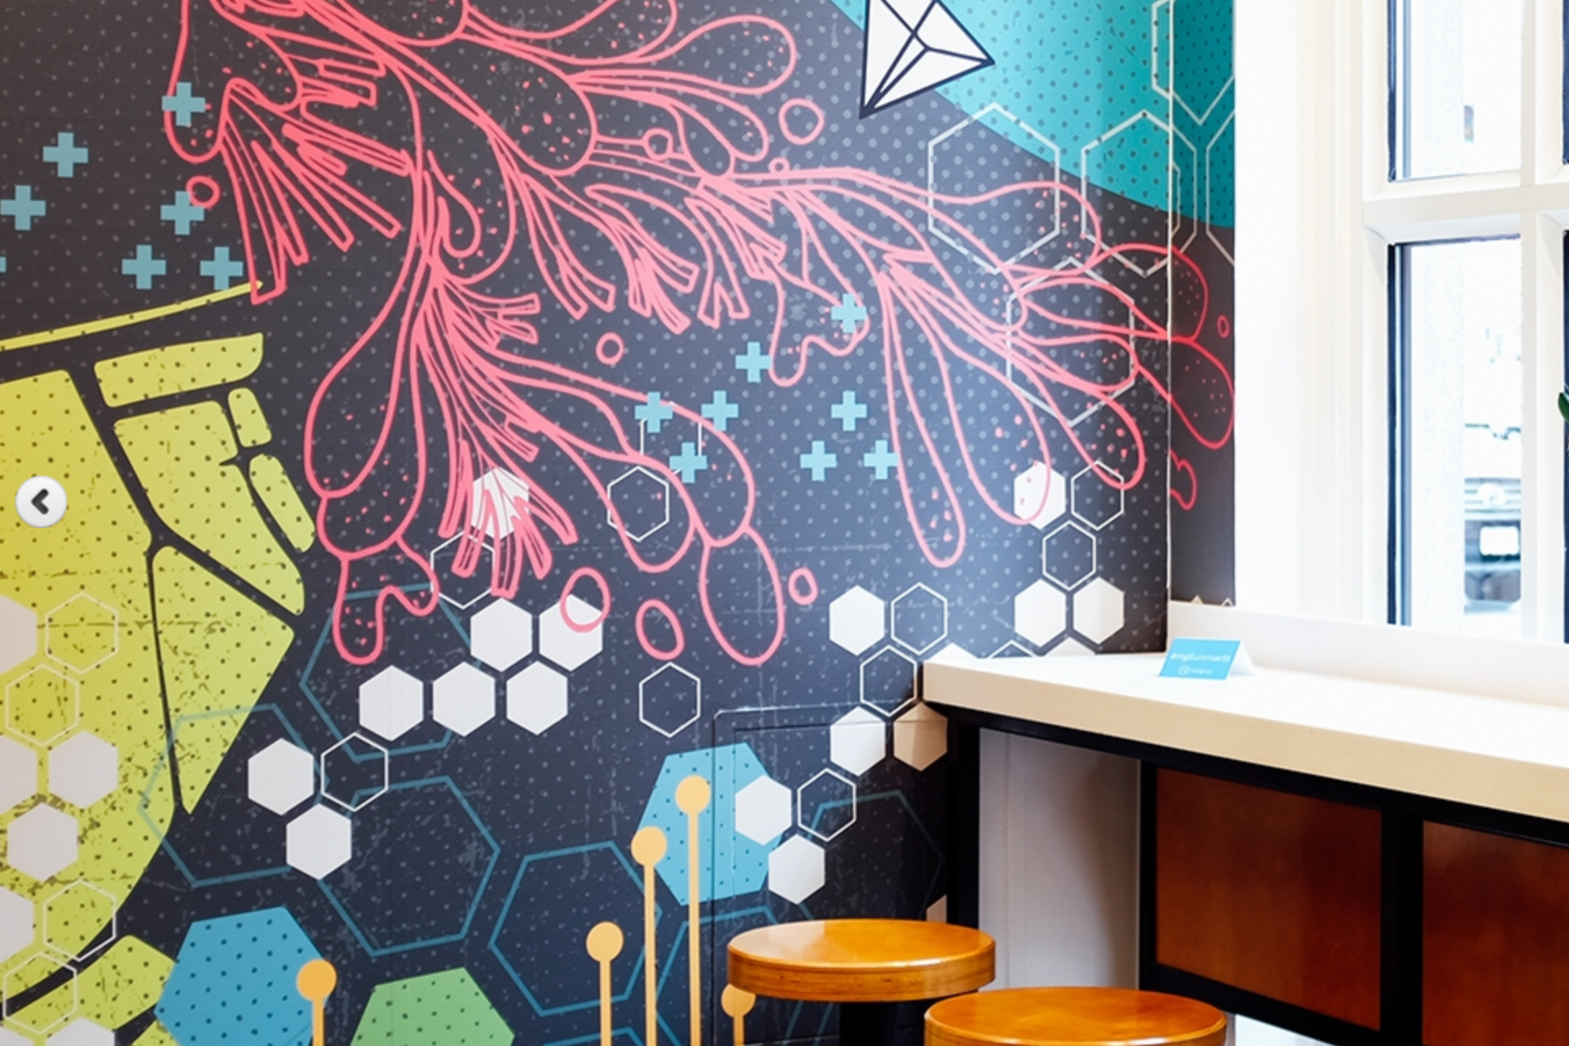 Check out the latest Honeygrow post about the new mural I created at their Minigrow 125 Summer st. location in Boston! Photo courtesy of Honeygrow